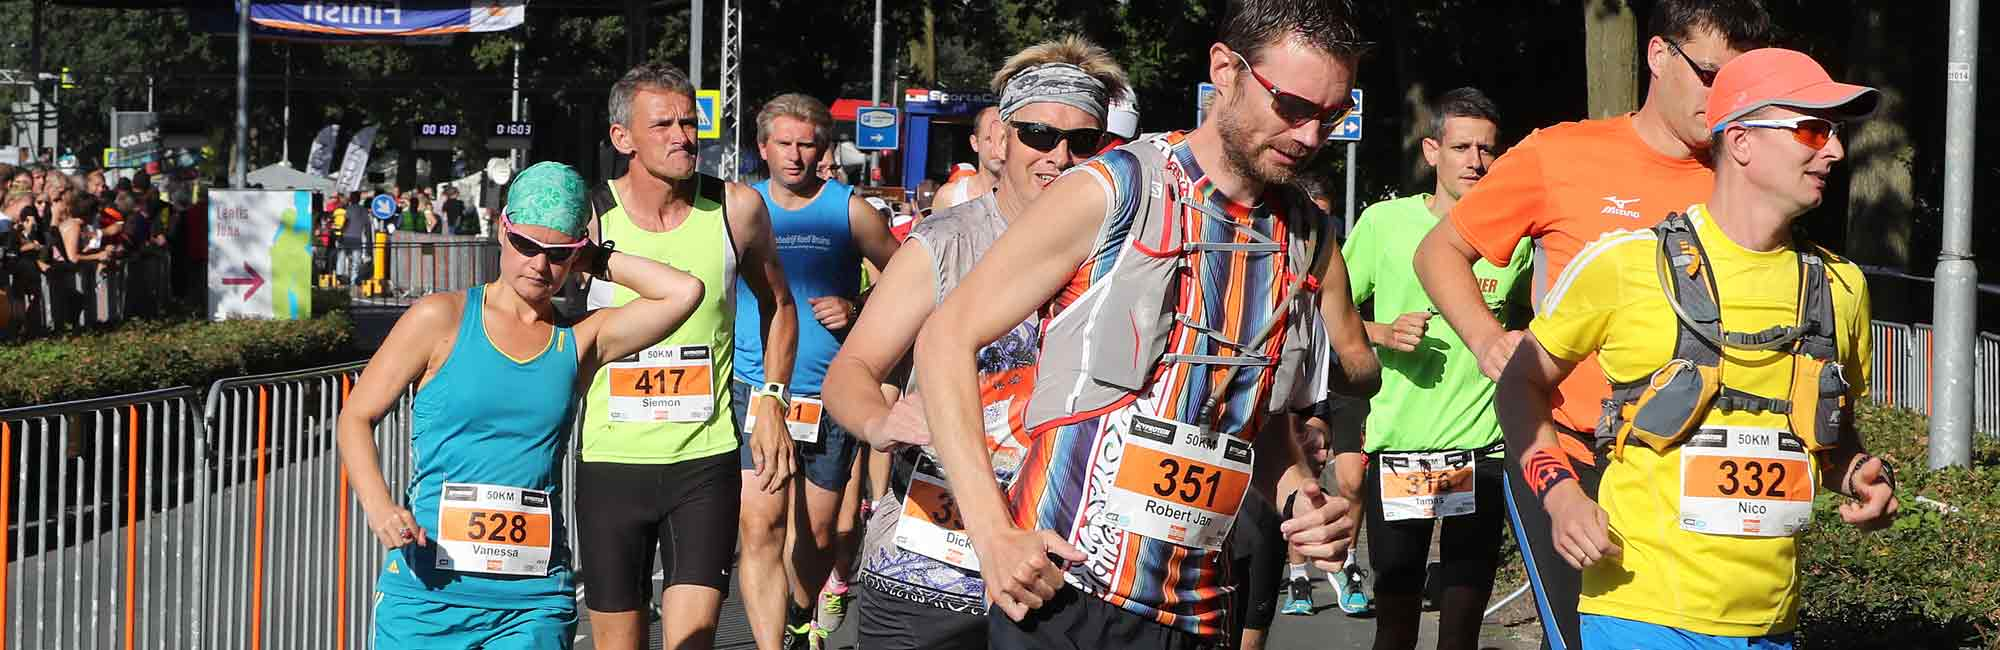 10 en 11 september 2021 - RUN Winschoten